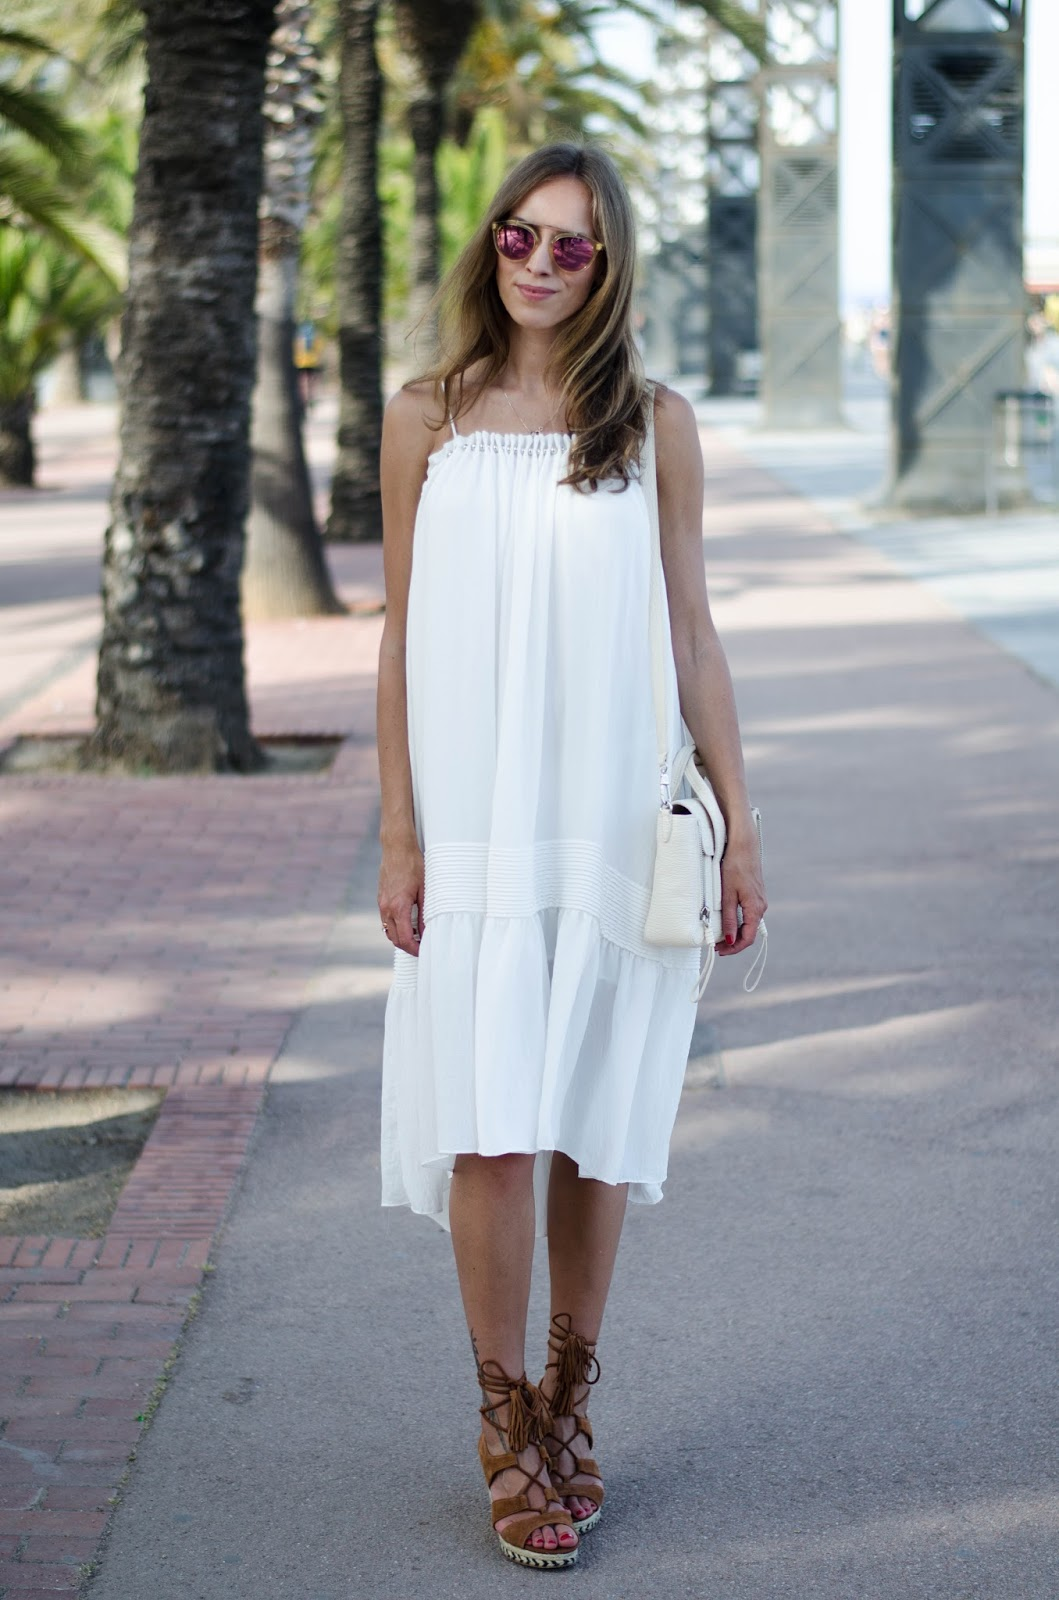 kristjaana mere white summer midi dress outfit